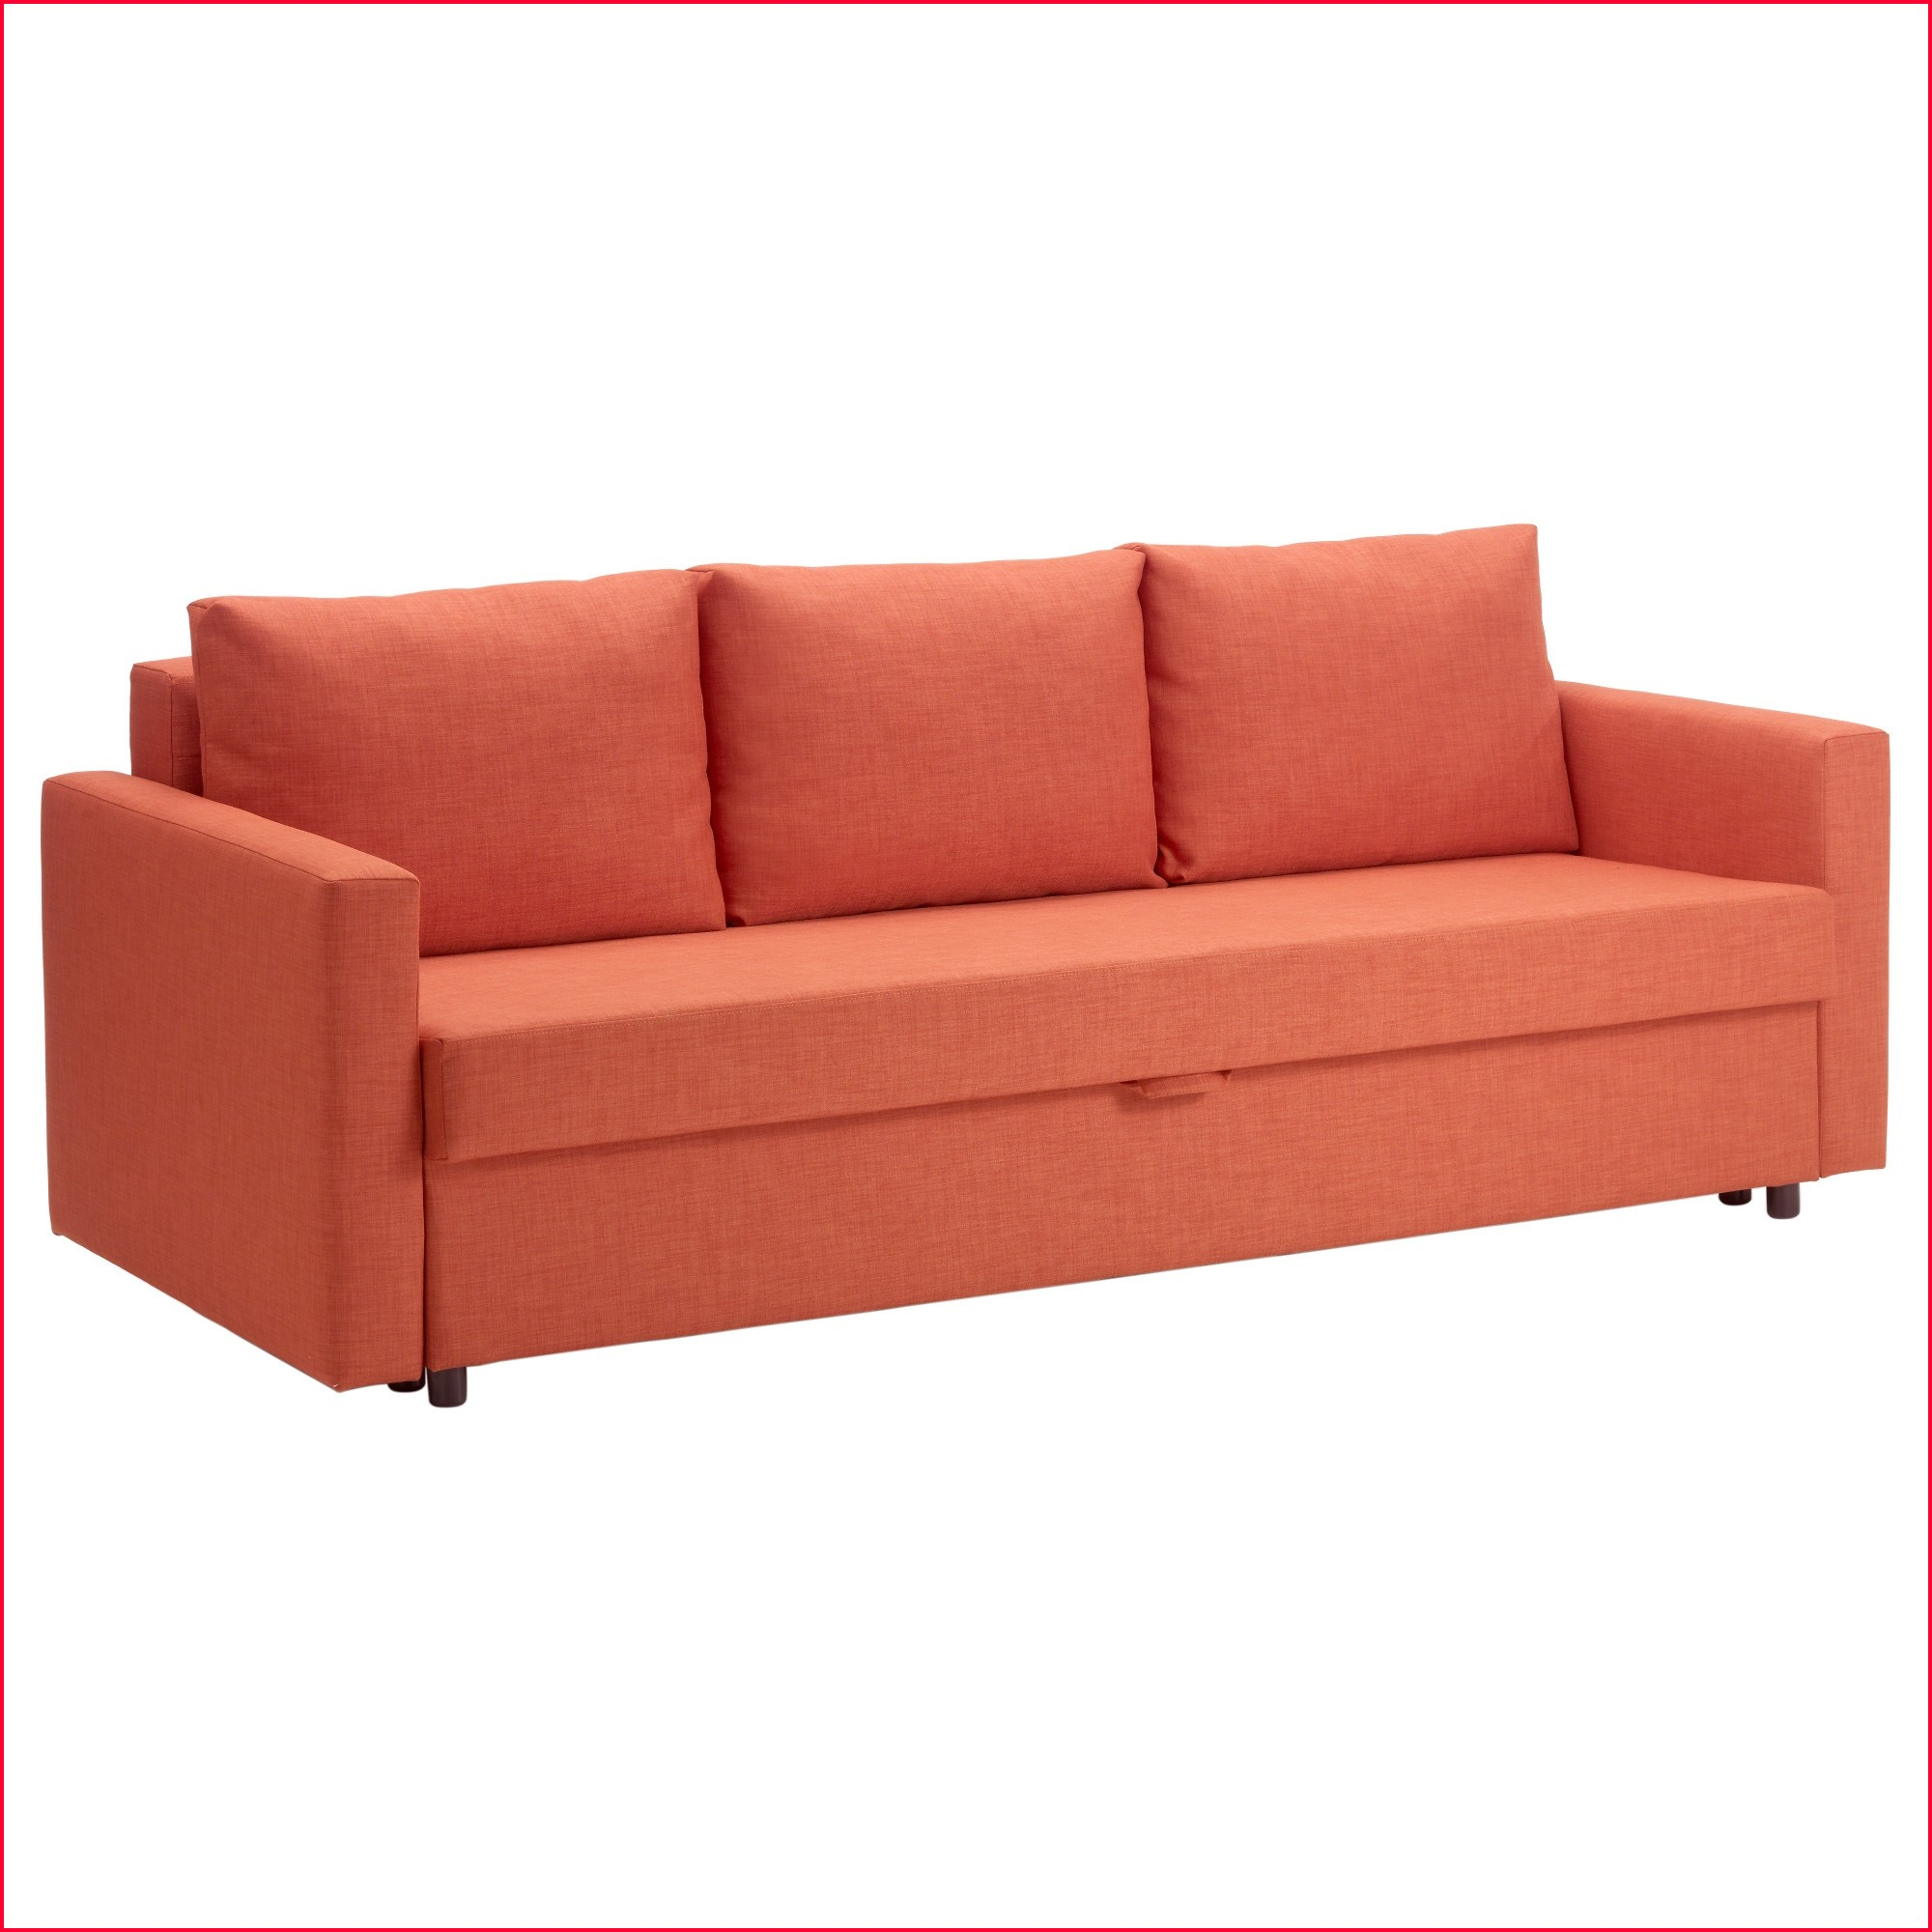 Sofa Cama Italiano Ikea Budm Ikea Sillon Cama Sillon Cama 1 Plaza Ikea Latest top sofa Cama